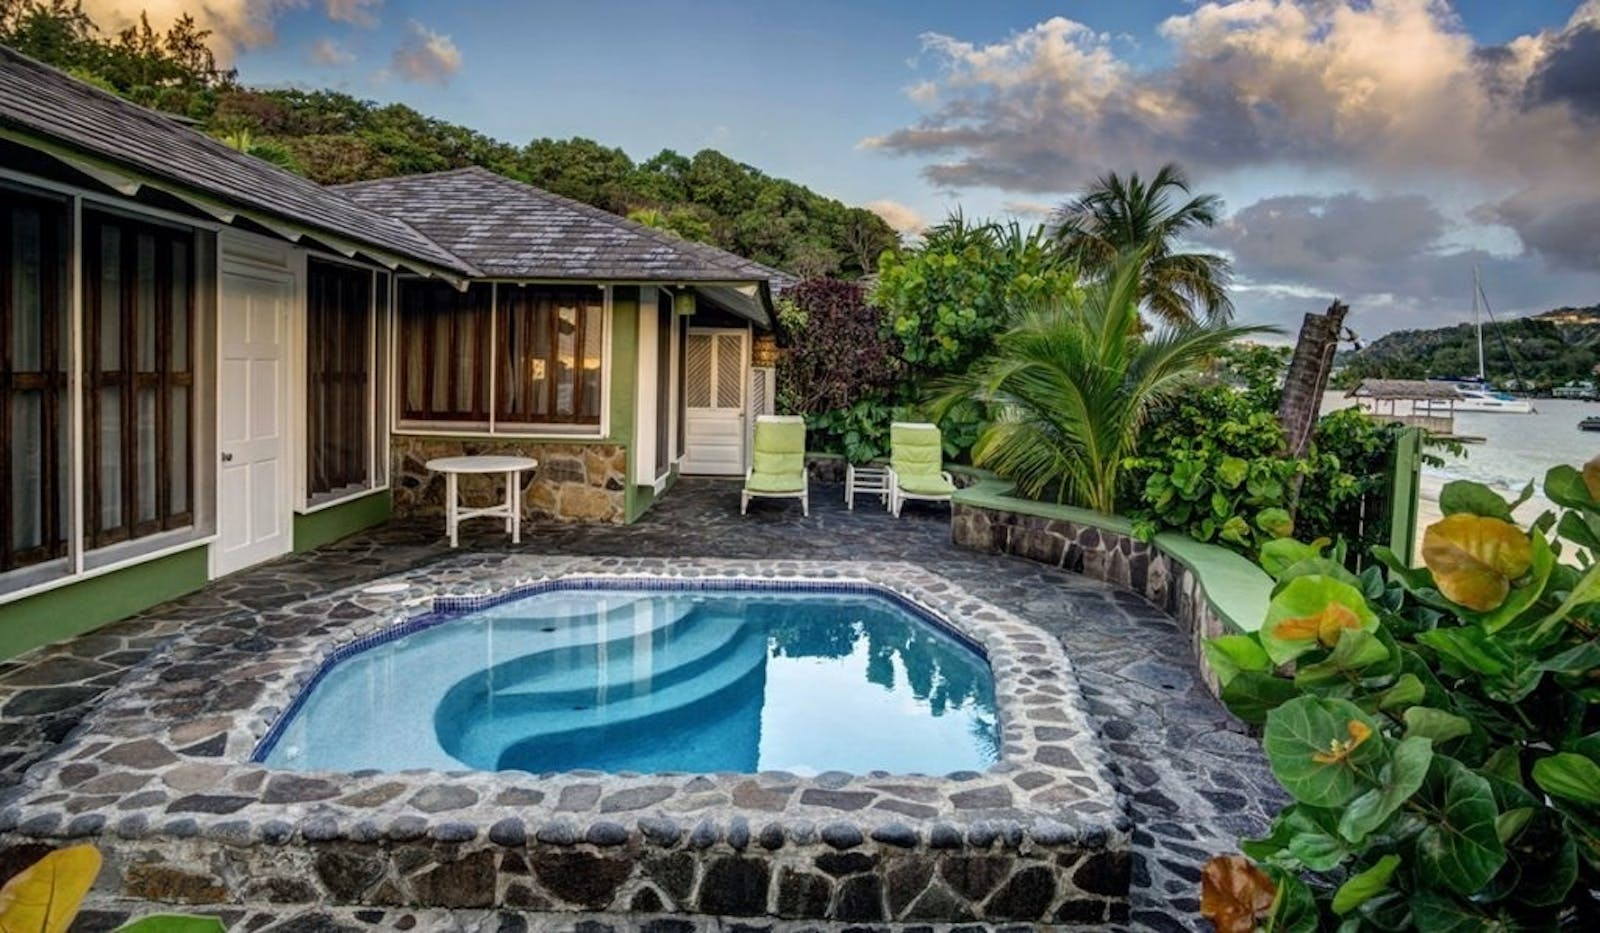 Luxury Cottage Plunge Pool at Young Island, St. Vincent & The Grenadines, Caribbean